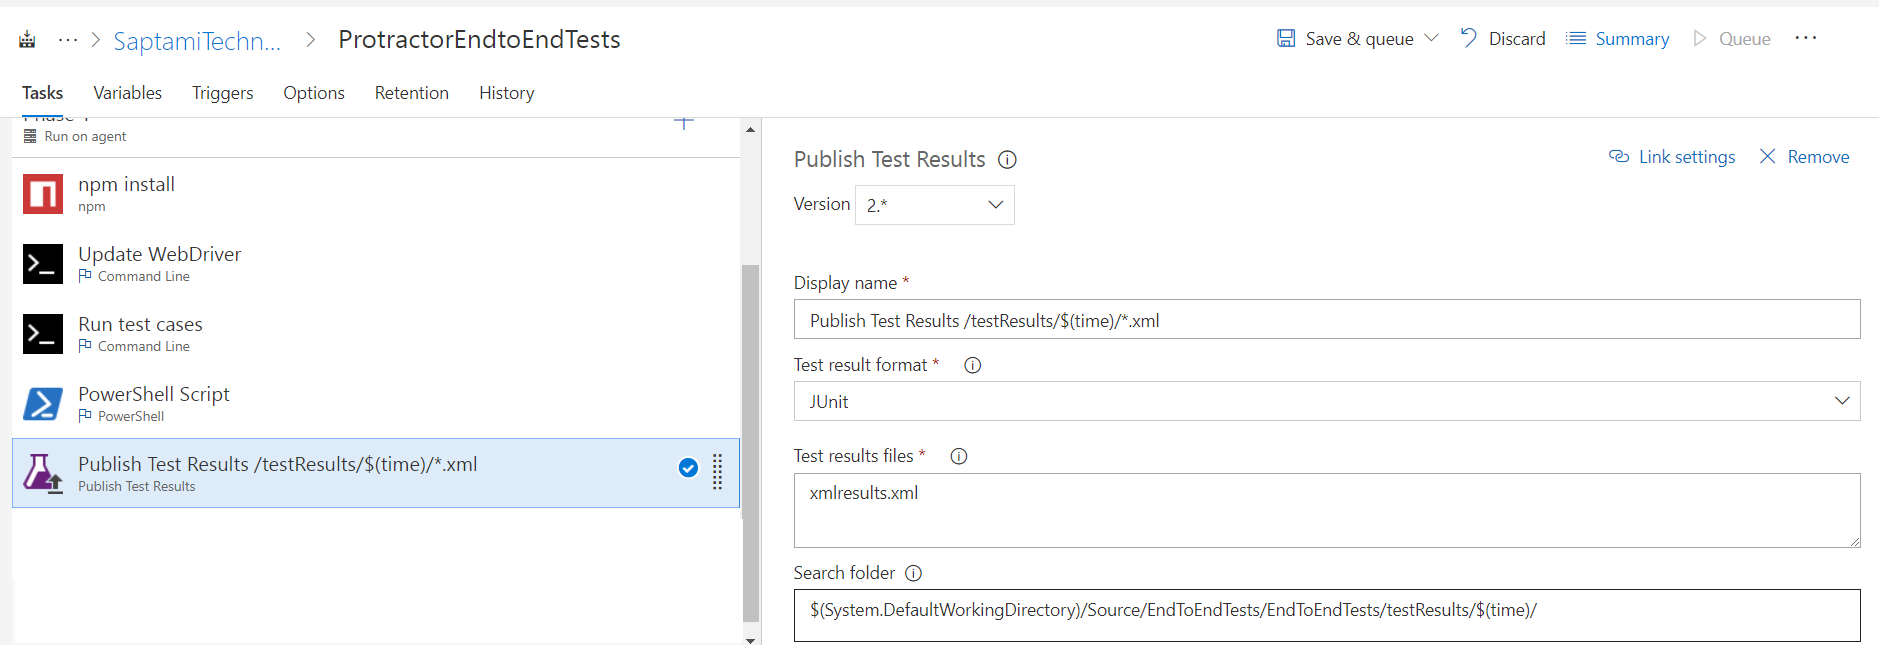 Protractor End to End Tests Configure on CI/CD TFS/VSTS